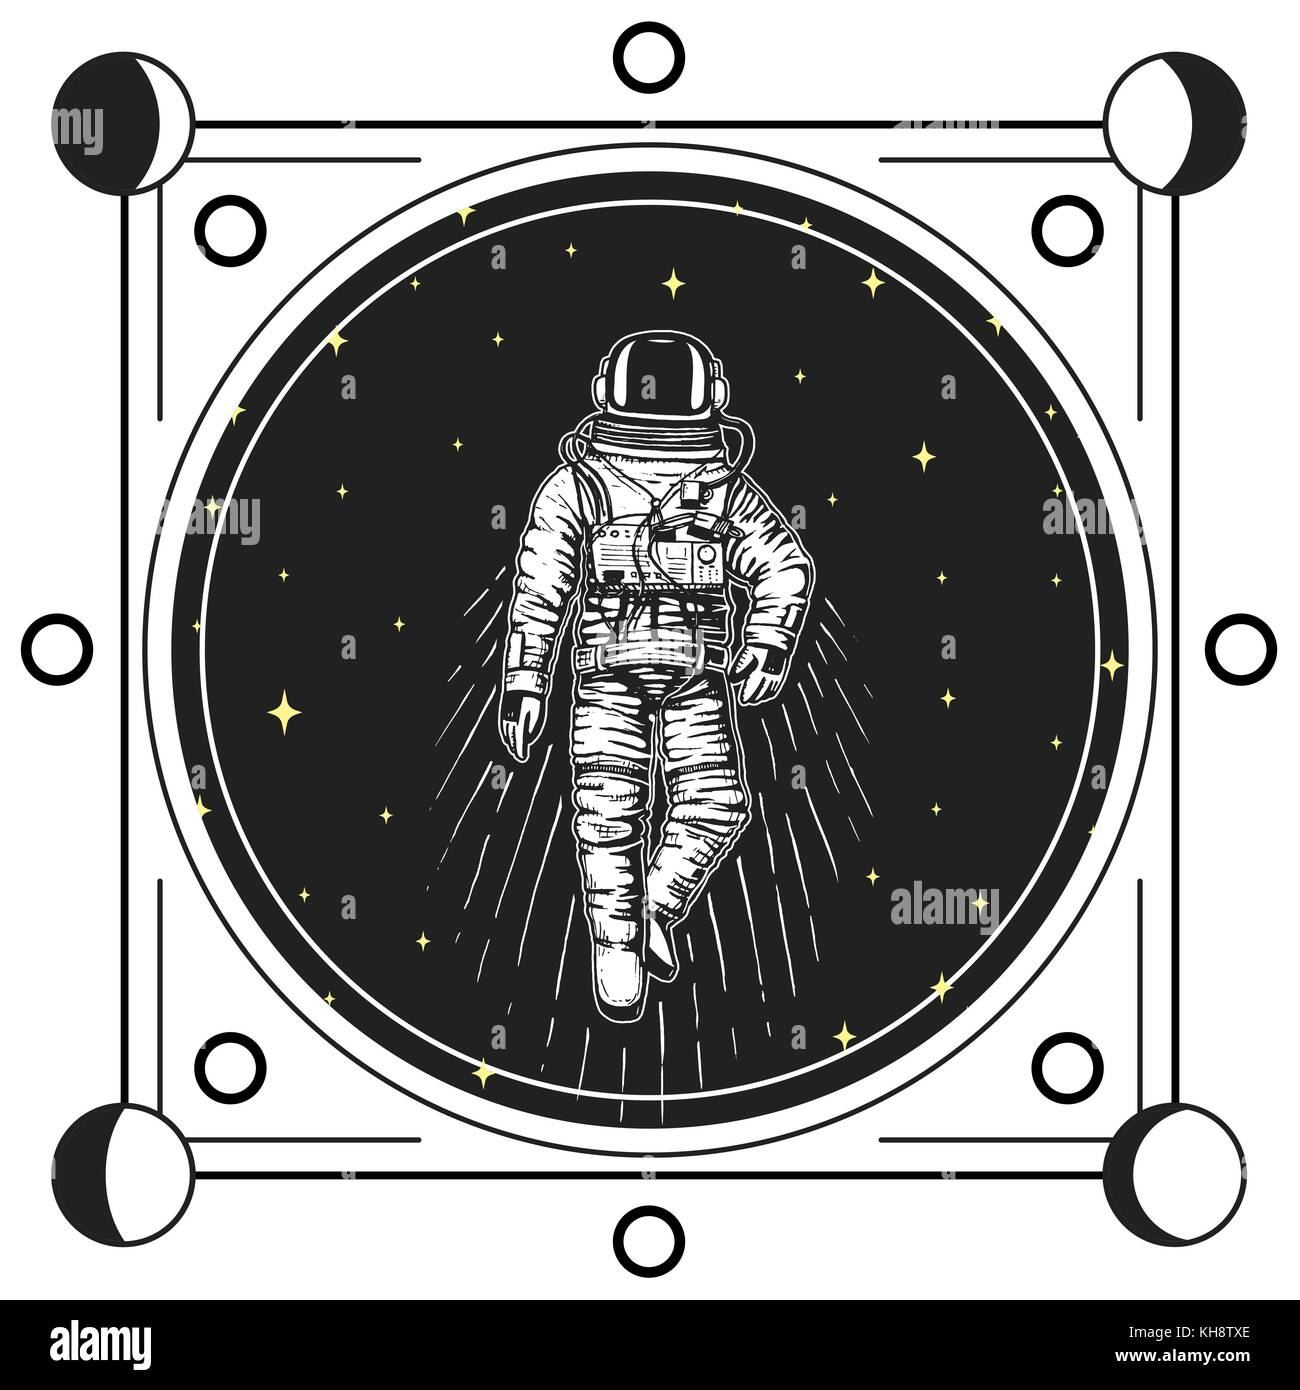 Astronaut Spaceman Moon Phases Planets In Solar System Astronomical Galaxy Space Cosmonaut Explore Adventure Engraved Hand Drawn Old Sketch Vintage